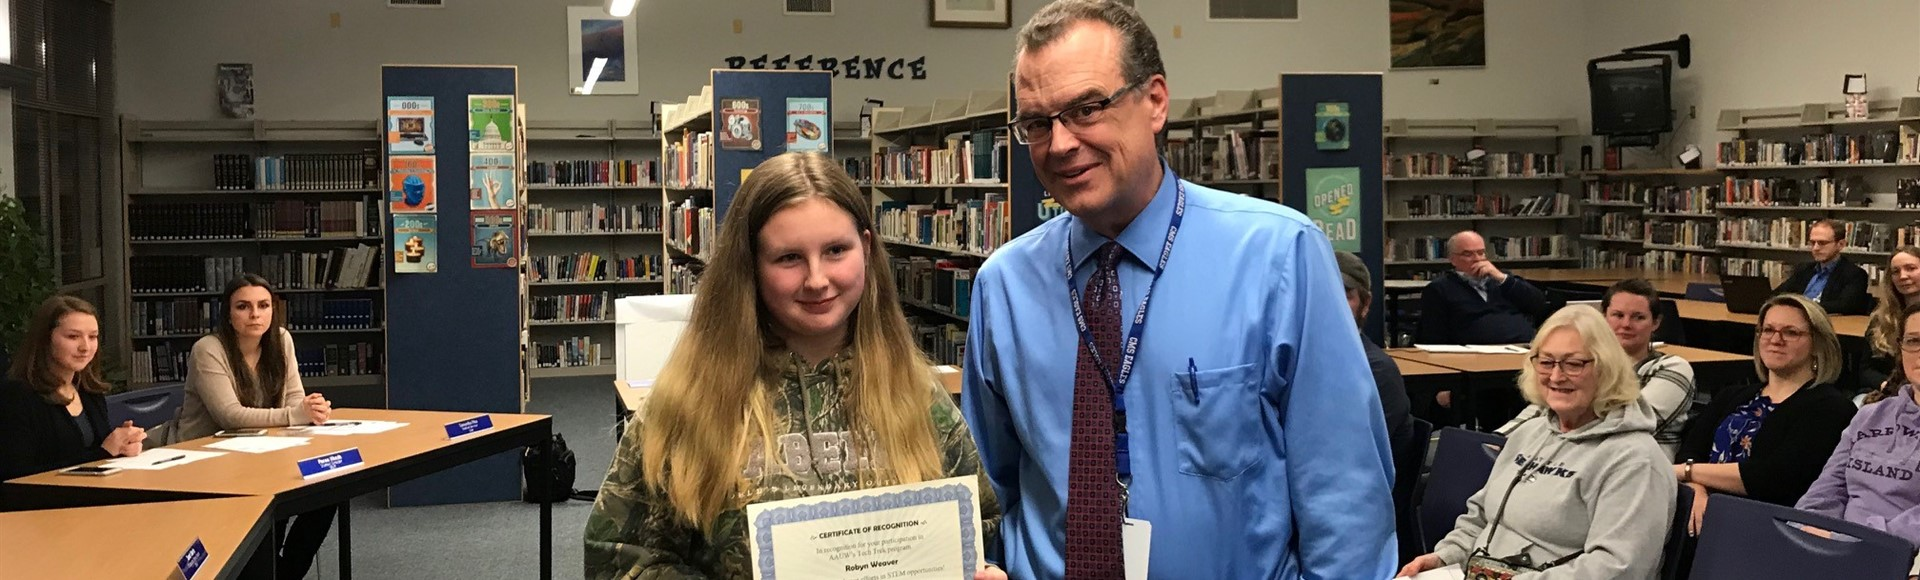 CMS Student recognized by Principal David Carthum for AAUW Tech Trek Participation